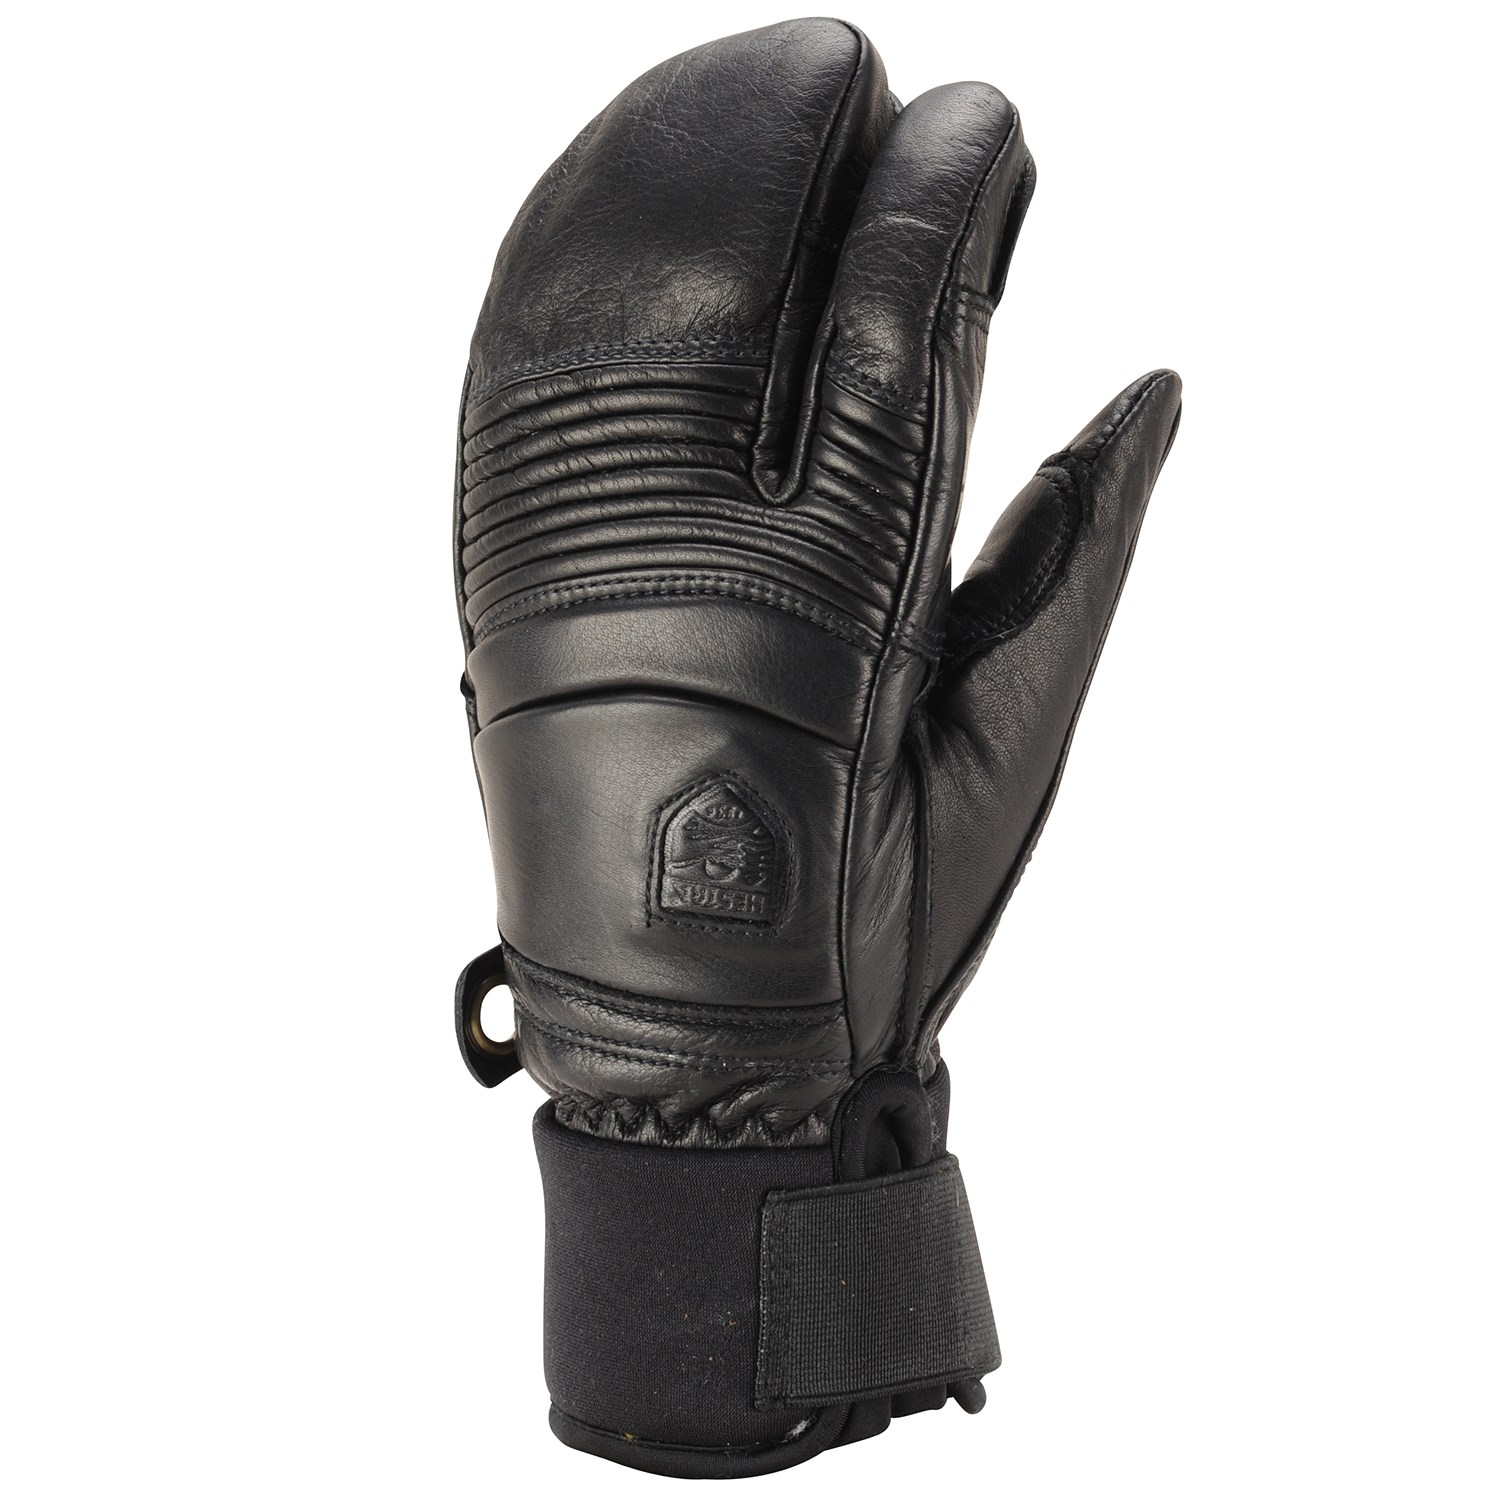 Hestra mens gloves - Hestra Mens Gloves 7